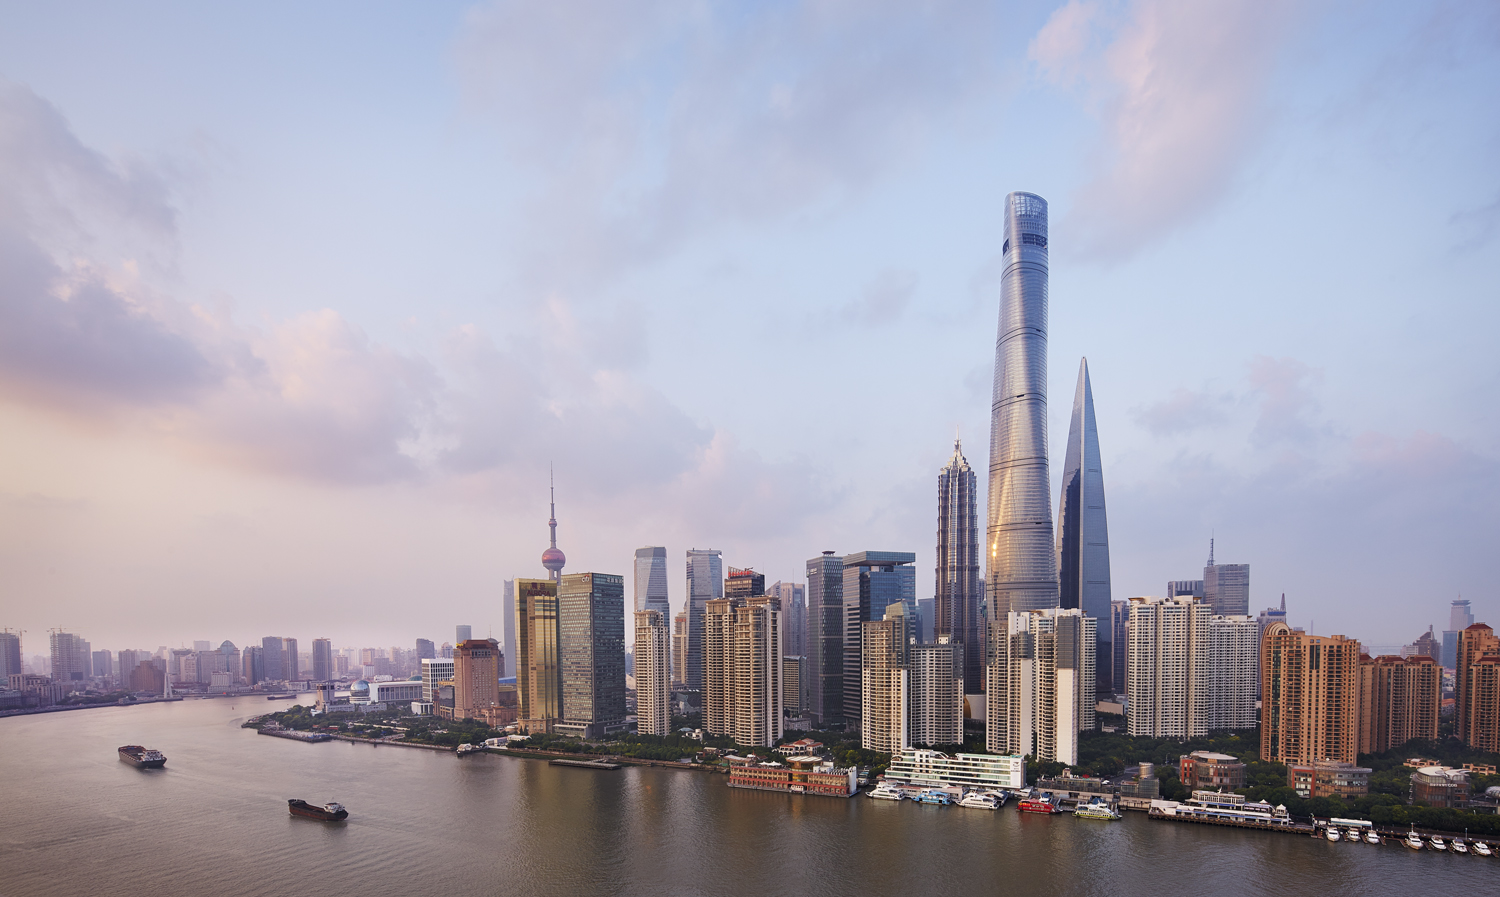 Shanghai Tower - Gensler